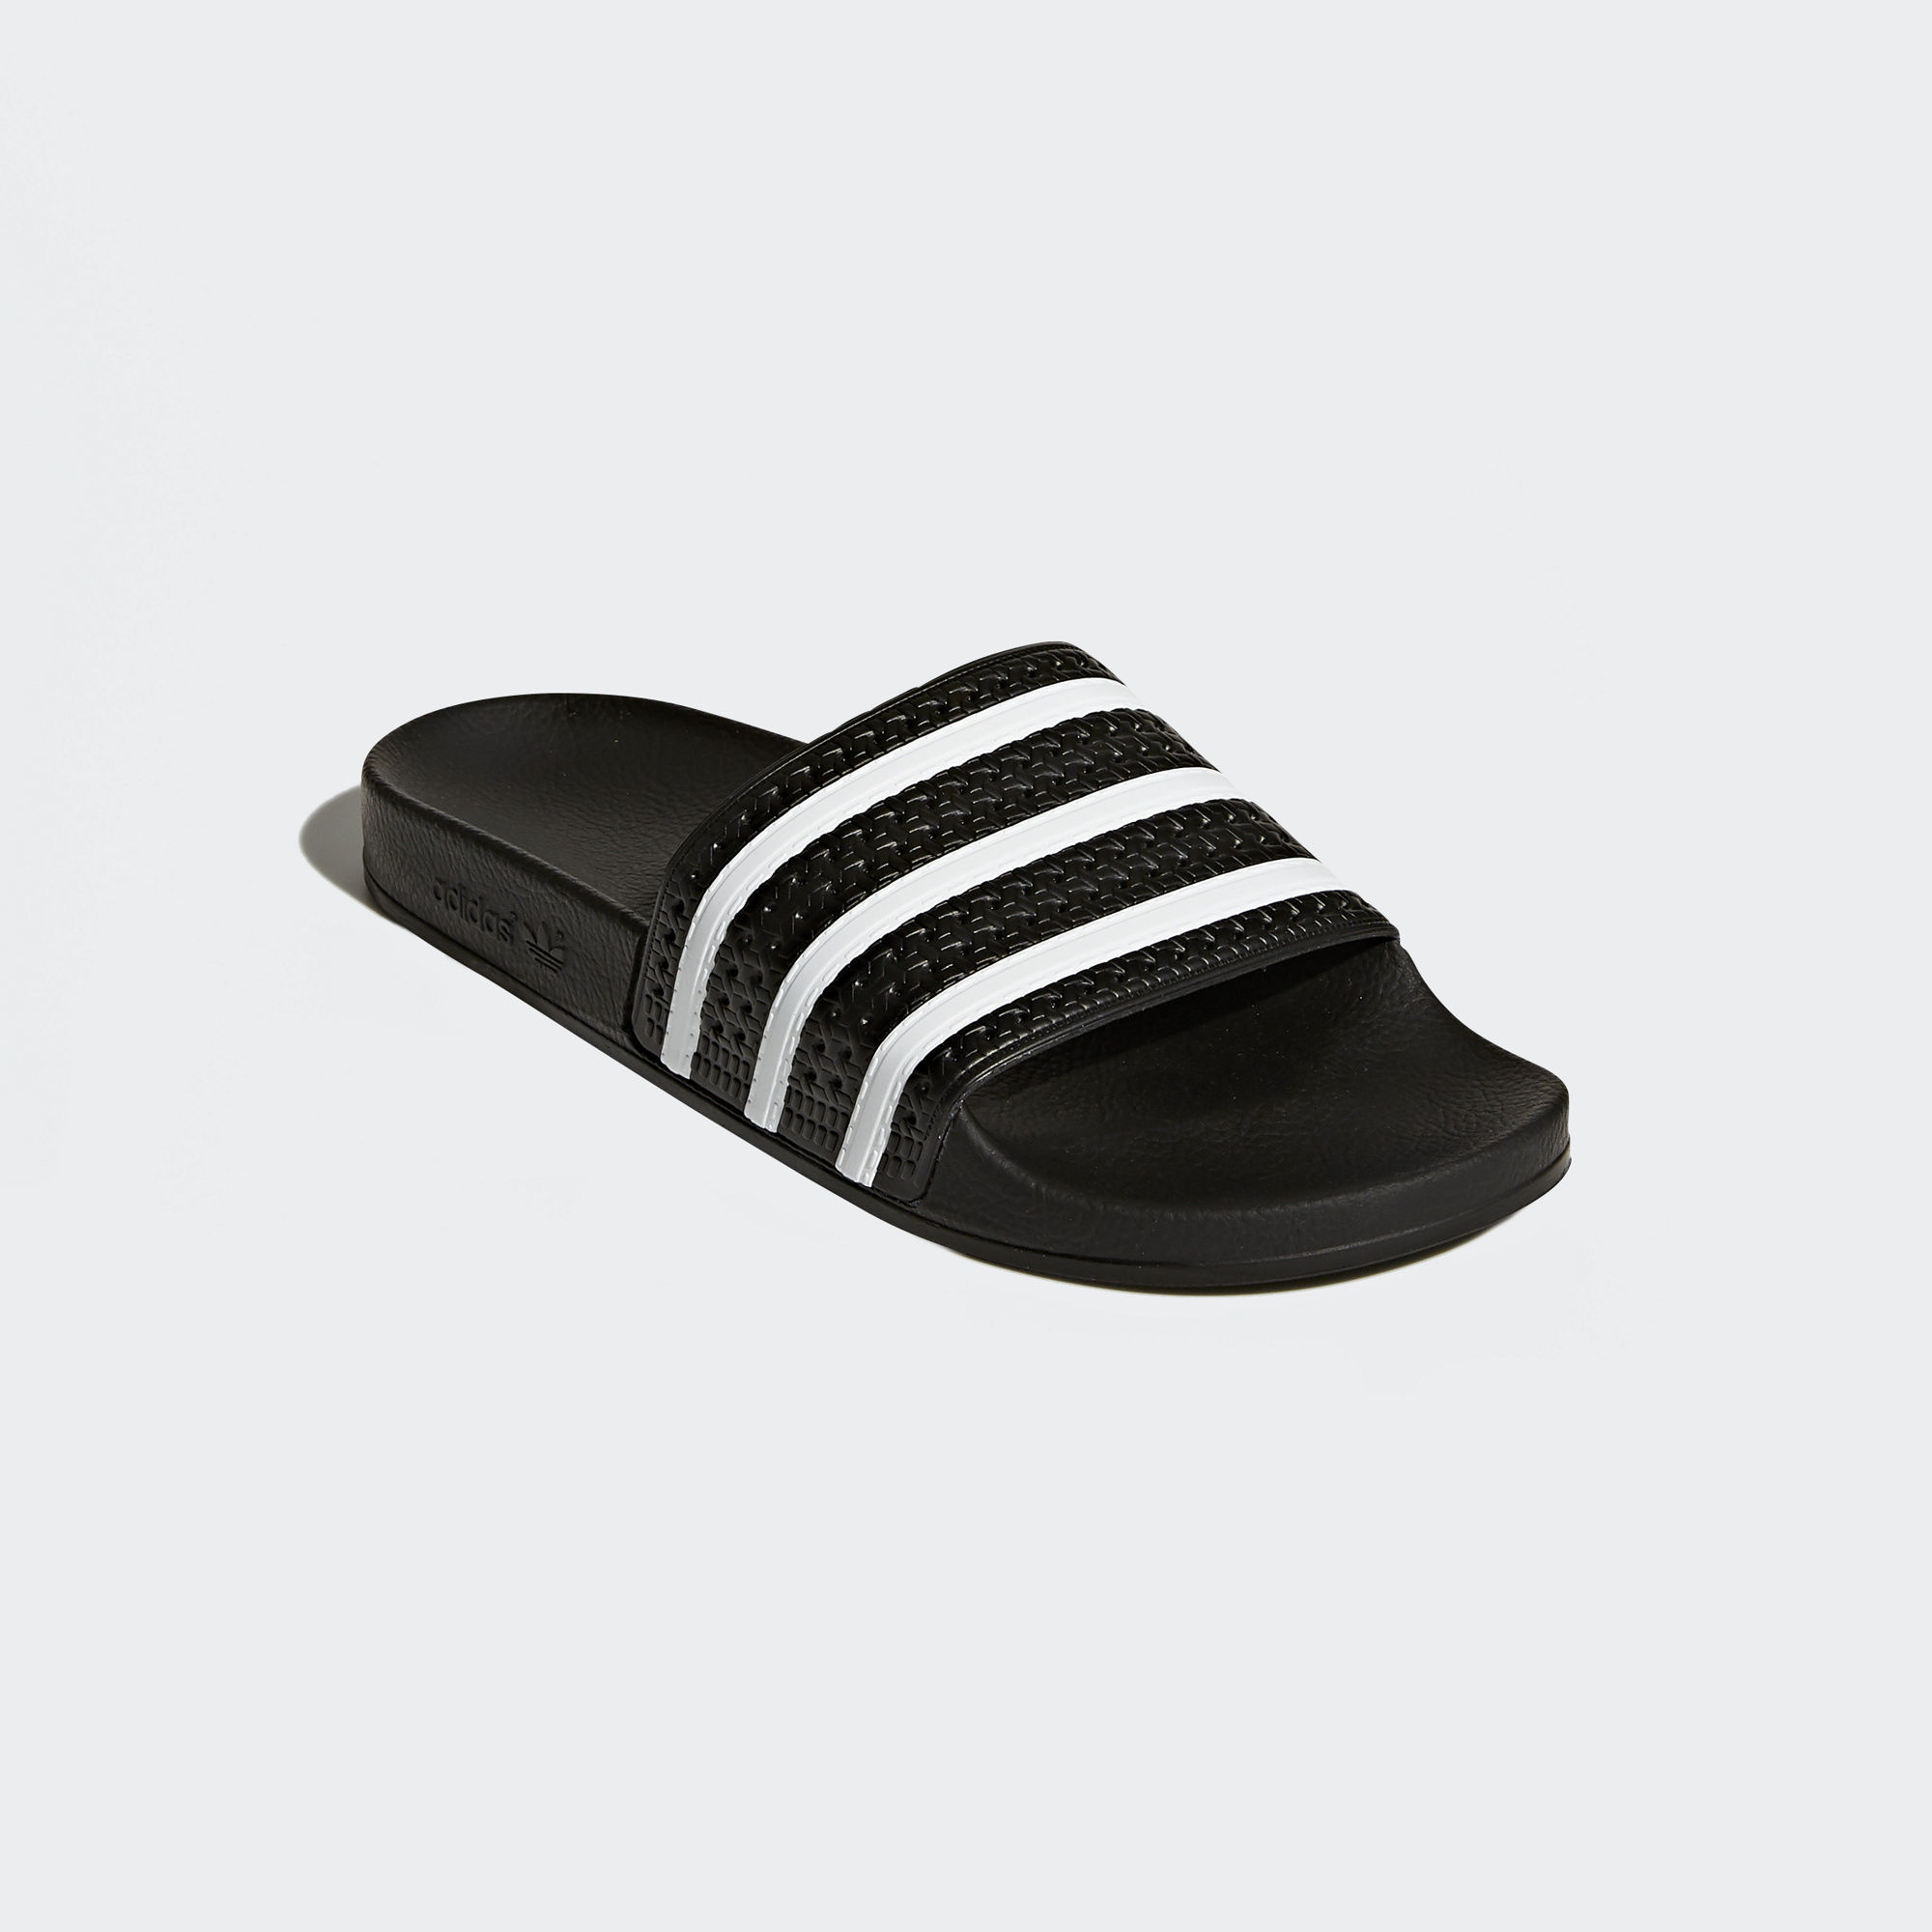 d3eba4cb89f1 Adidas Slides   Buy cheap Adidas shoes online - Clvyall.com